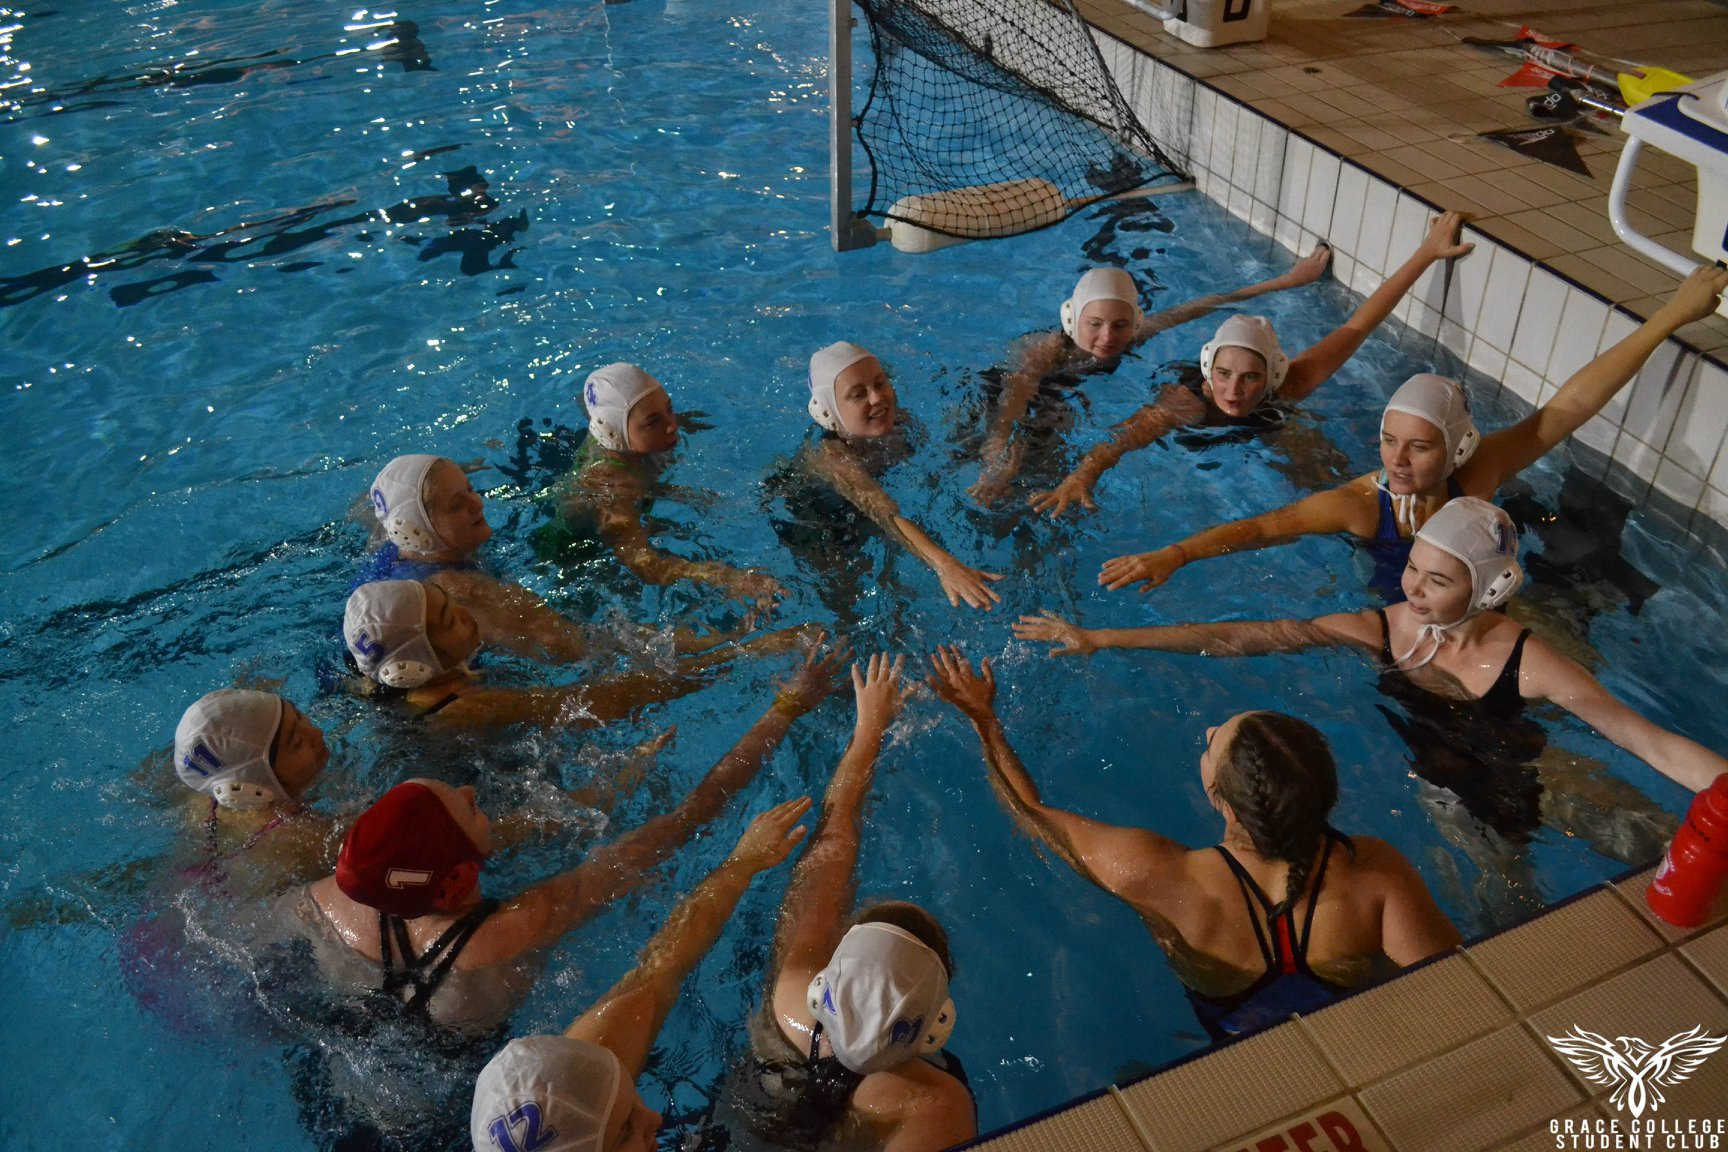 Water polo team in the water